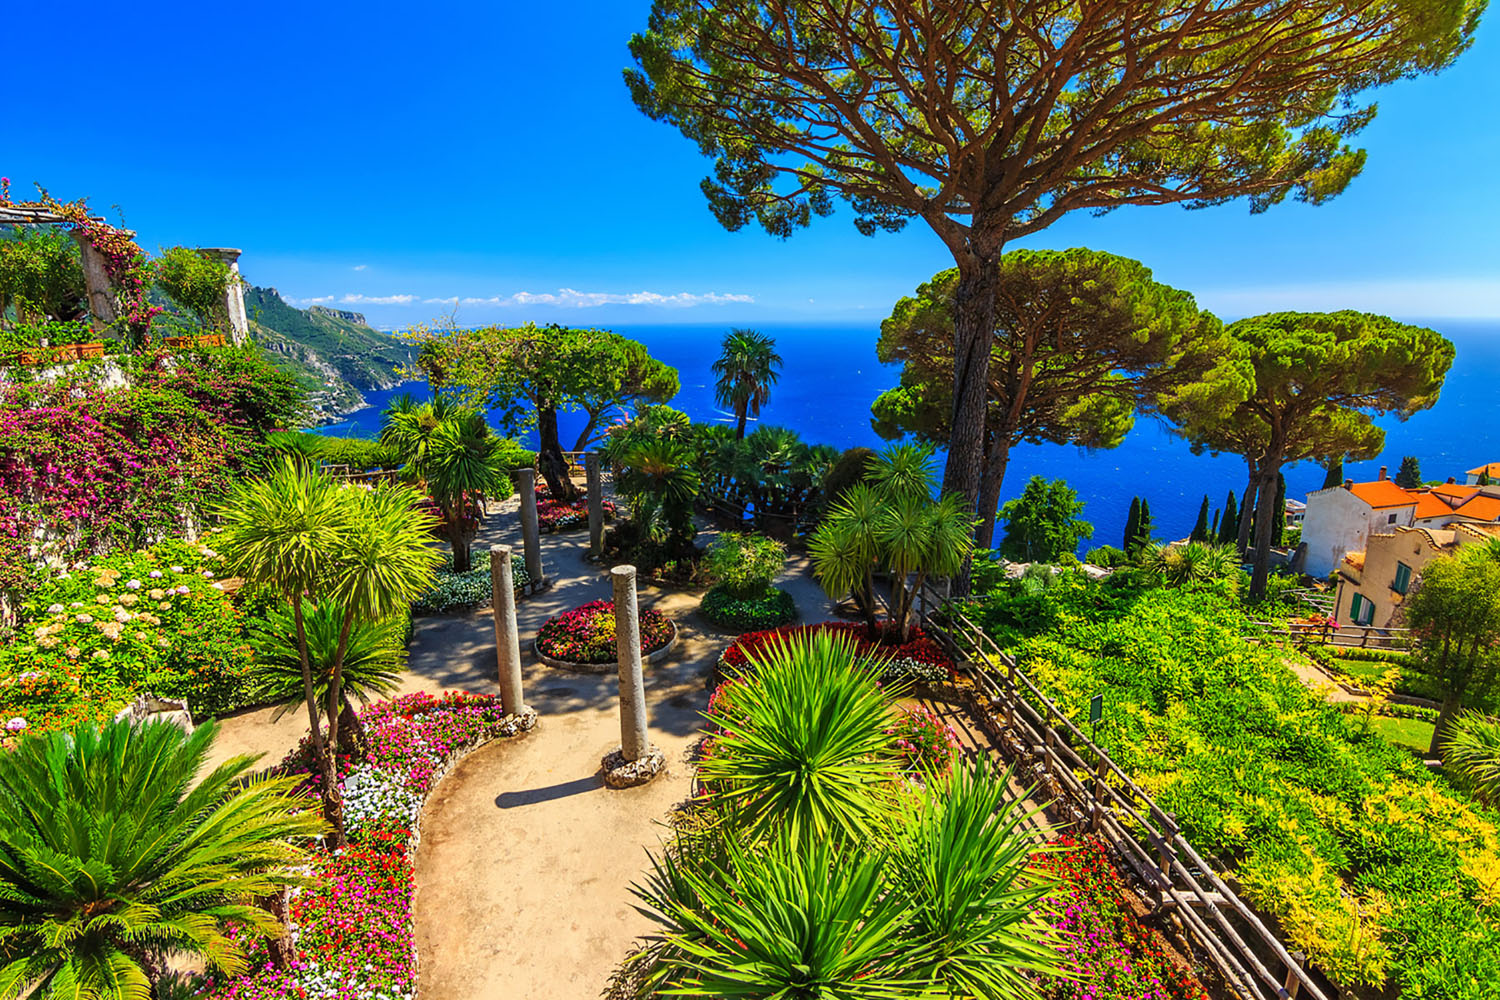 Ornamental garden with colorful flowers in Ravello, Italy